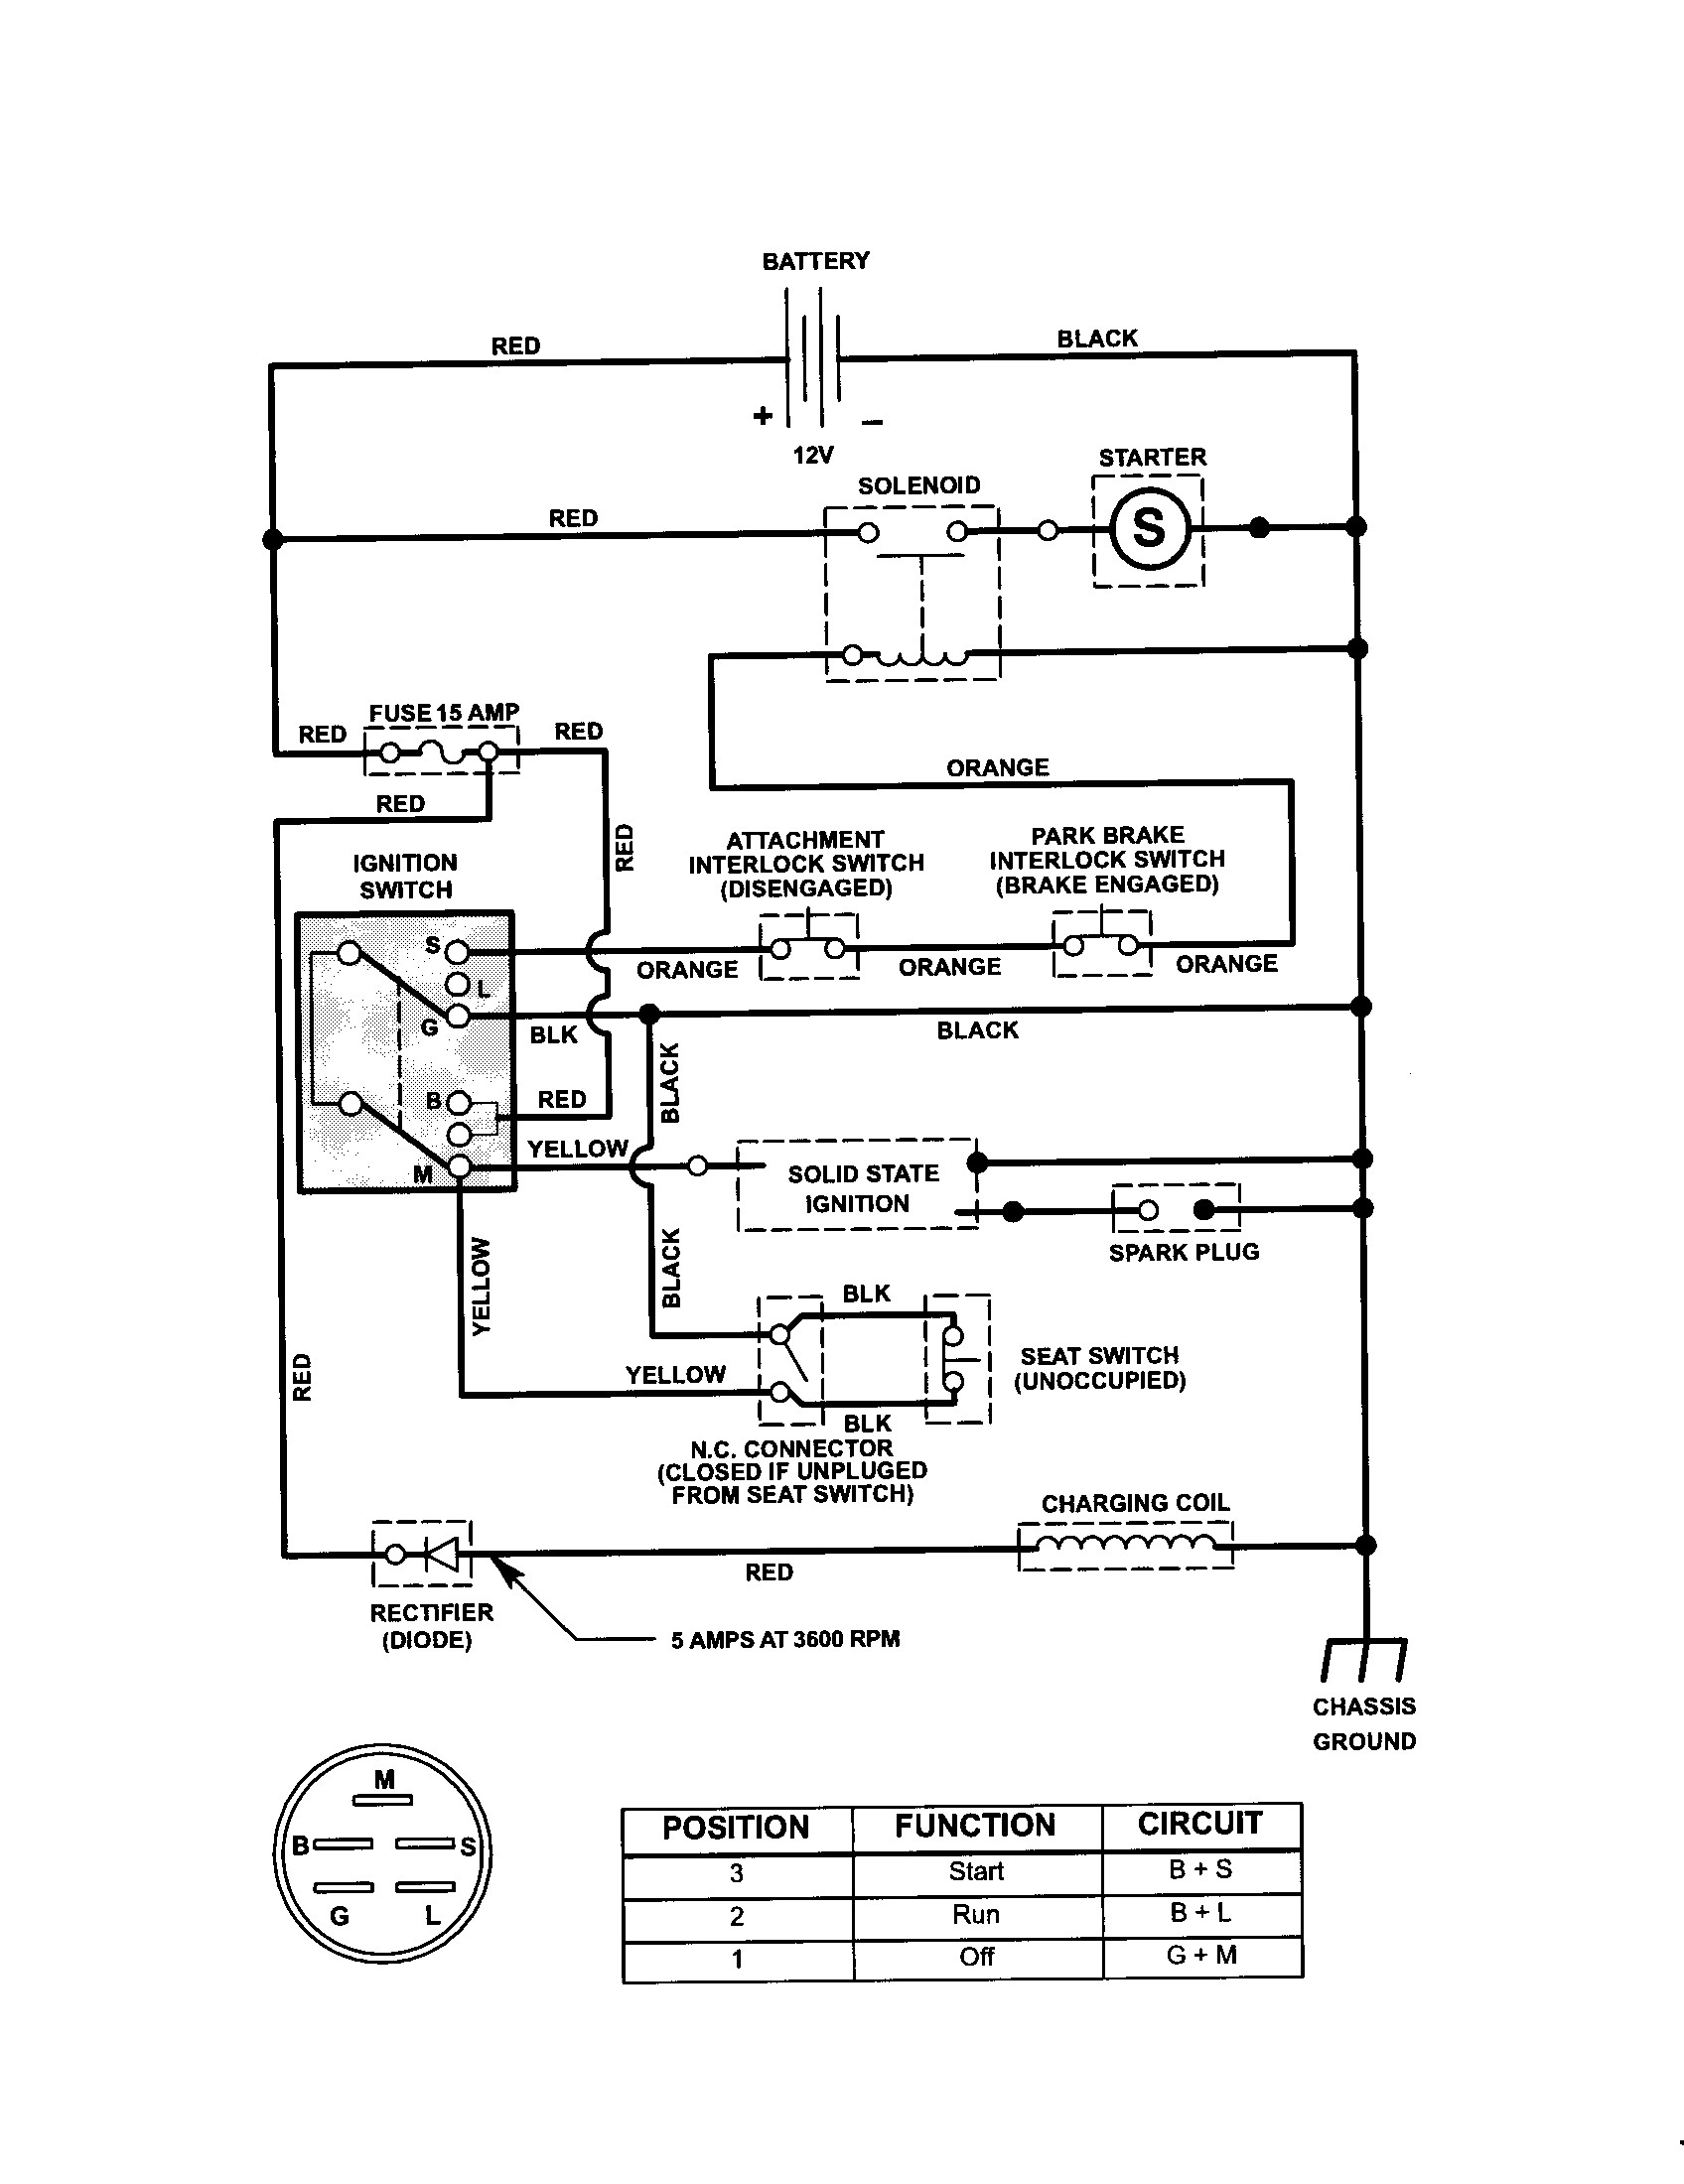 Great Dane Mower Wiring Diagram | Wiring Liry on gravely side by side, gravely transmission, gravely lawn tractors, gravely chainsaw, gravely charging system, gravely snow blower, perkins engine parts diagrams, gravely wheels and tires, gravely sickle bar mower, snapper parts diagrams, craftsman riding lawn mower diagrams, hotsy 540 parts diagrams, gravely engine diagram, gravely models, gravely transaxle, gravely key switch, mtd switch diagrams, gravely lawn mower diagram,